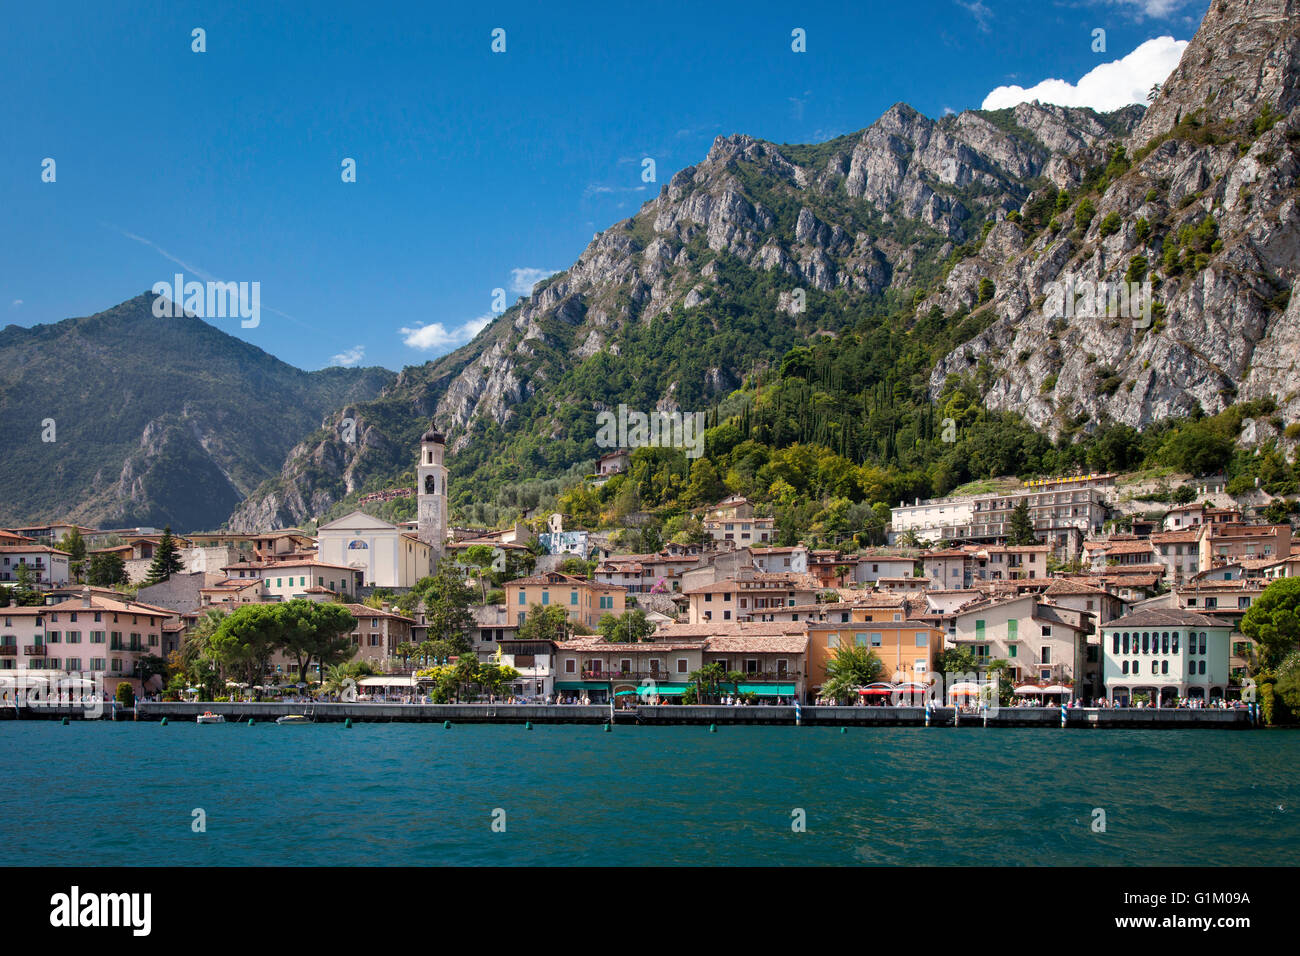 Massive cliffs tower over Limone-sul-Garda along the shores of Lake Garda, Lombardy, Italy - Stock Image